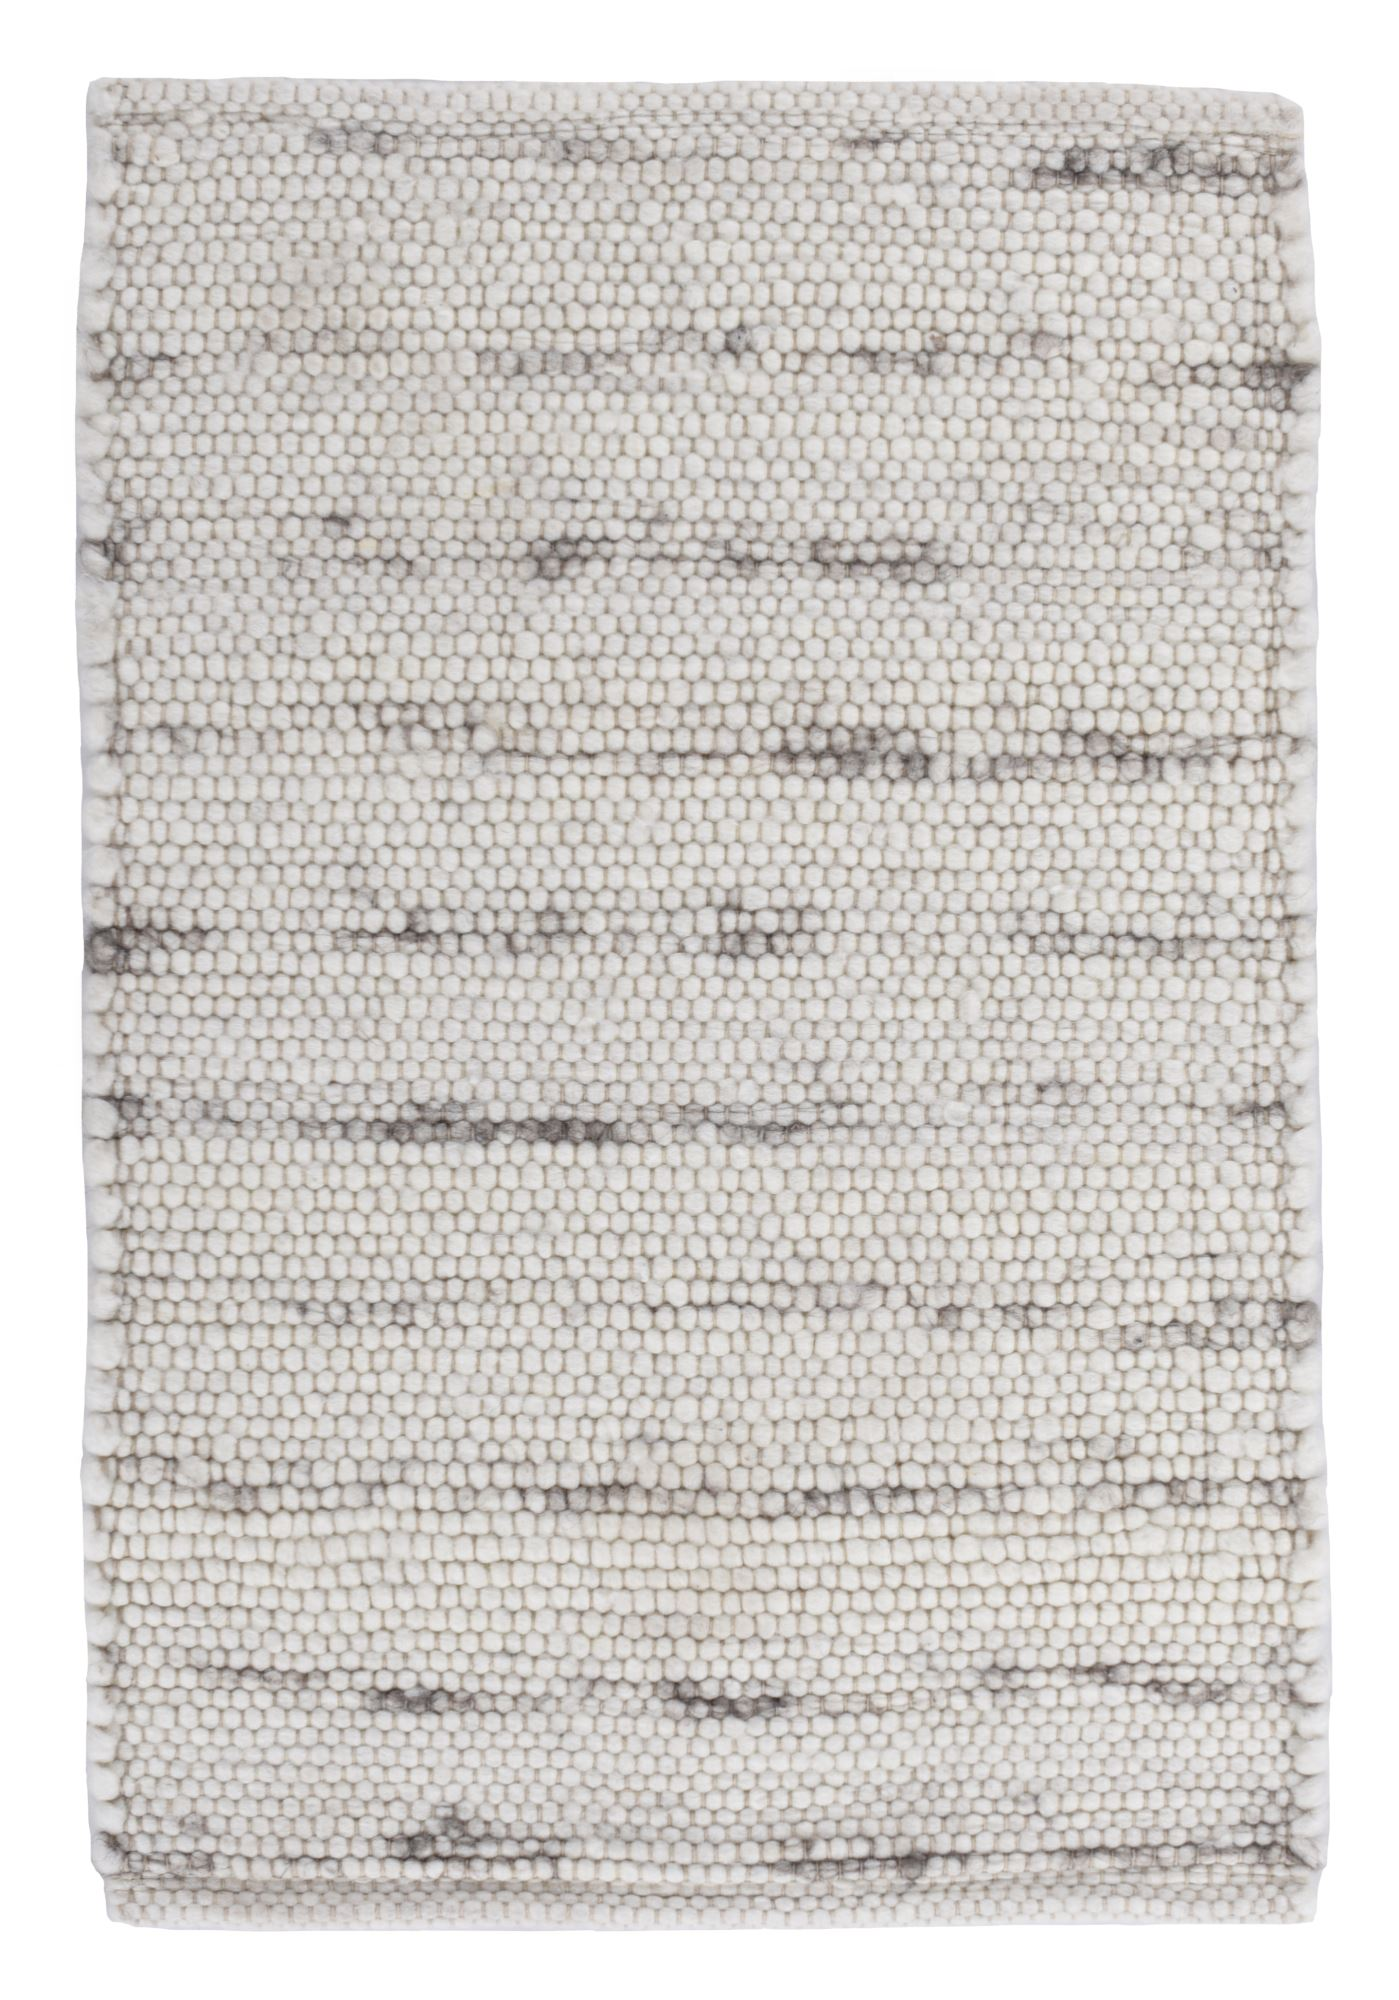 Tapis tissé à la main en laine naturelle natural grey 90x160